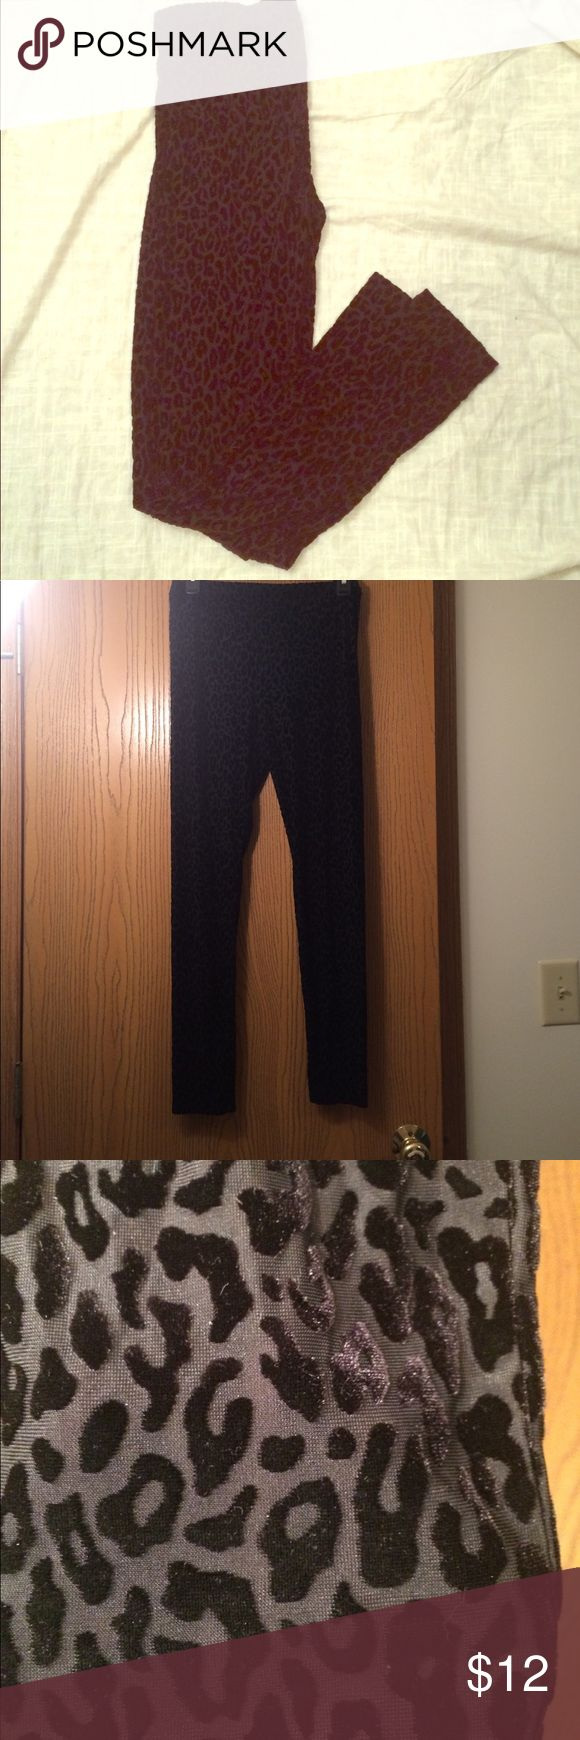 Forever 21 velvet Cheetah Leggings Size large. Cheetah print leggings. Have a somewhat sheer look to them, spot are velvety, which gives them a pop! They're a rocking! Good shape! Forever 21 Pants Leggings